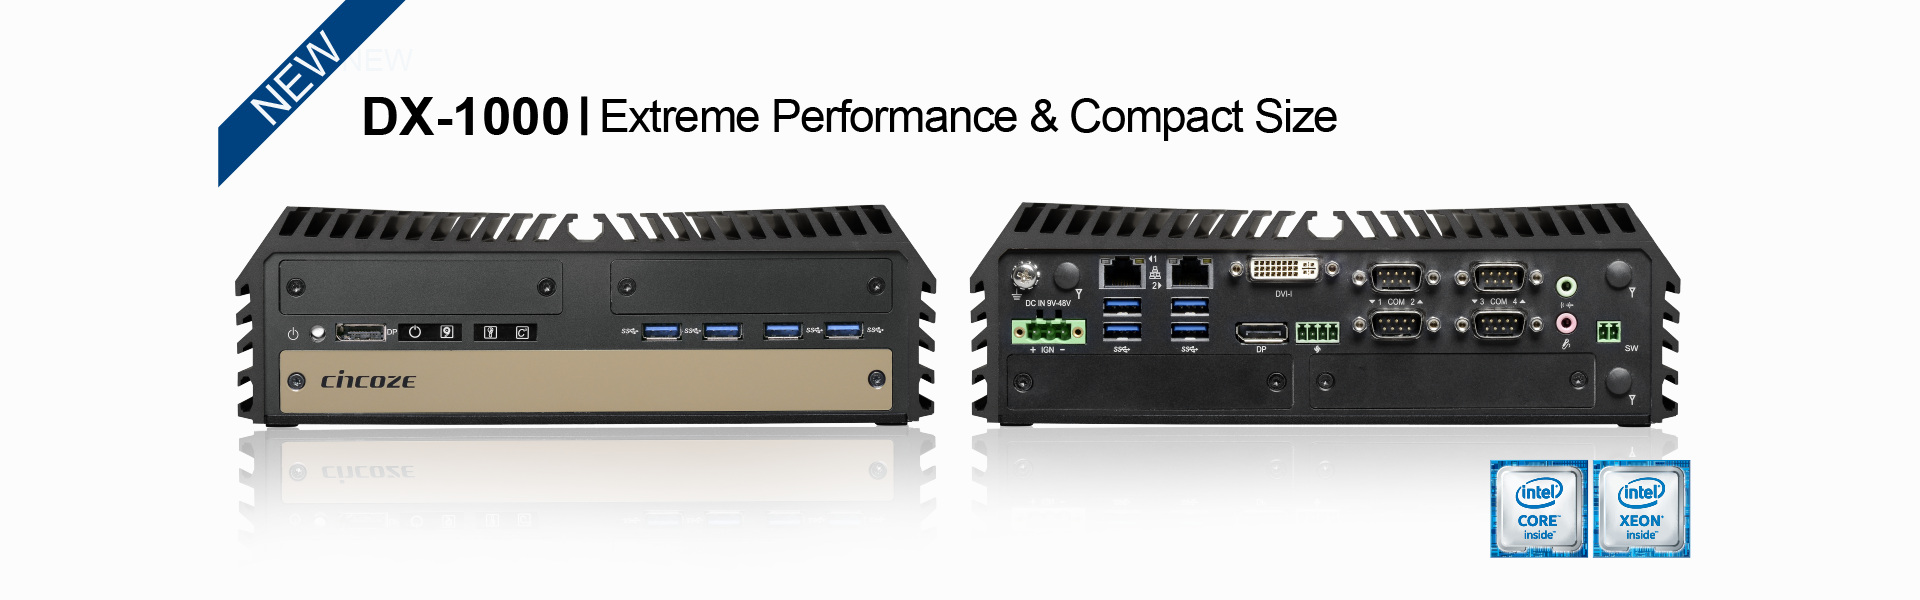 DX-1000: 7/6th Generation Intel® Xeon® and Core™ Processors, Extreme Performance, Compact and Modular Rugged Workstation